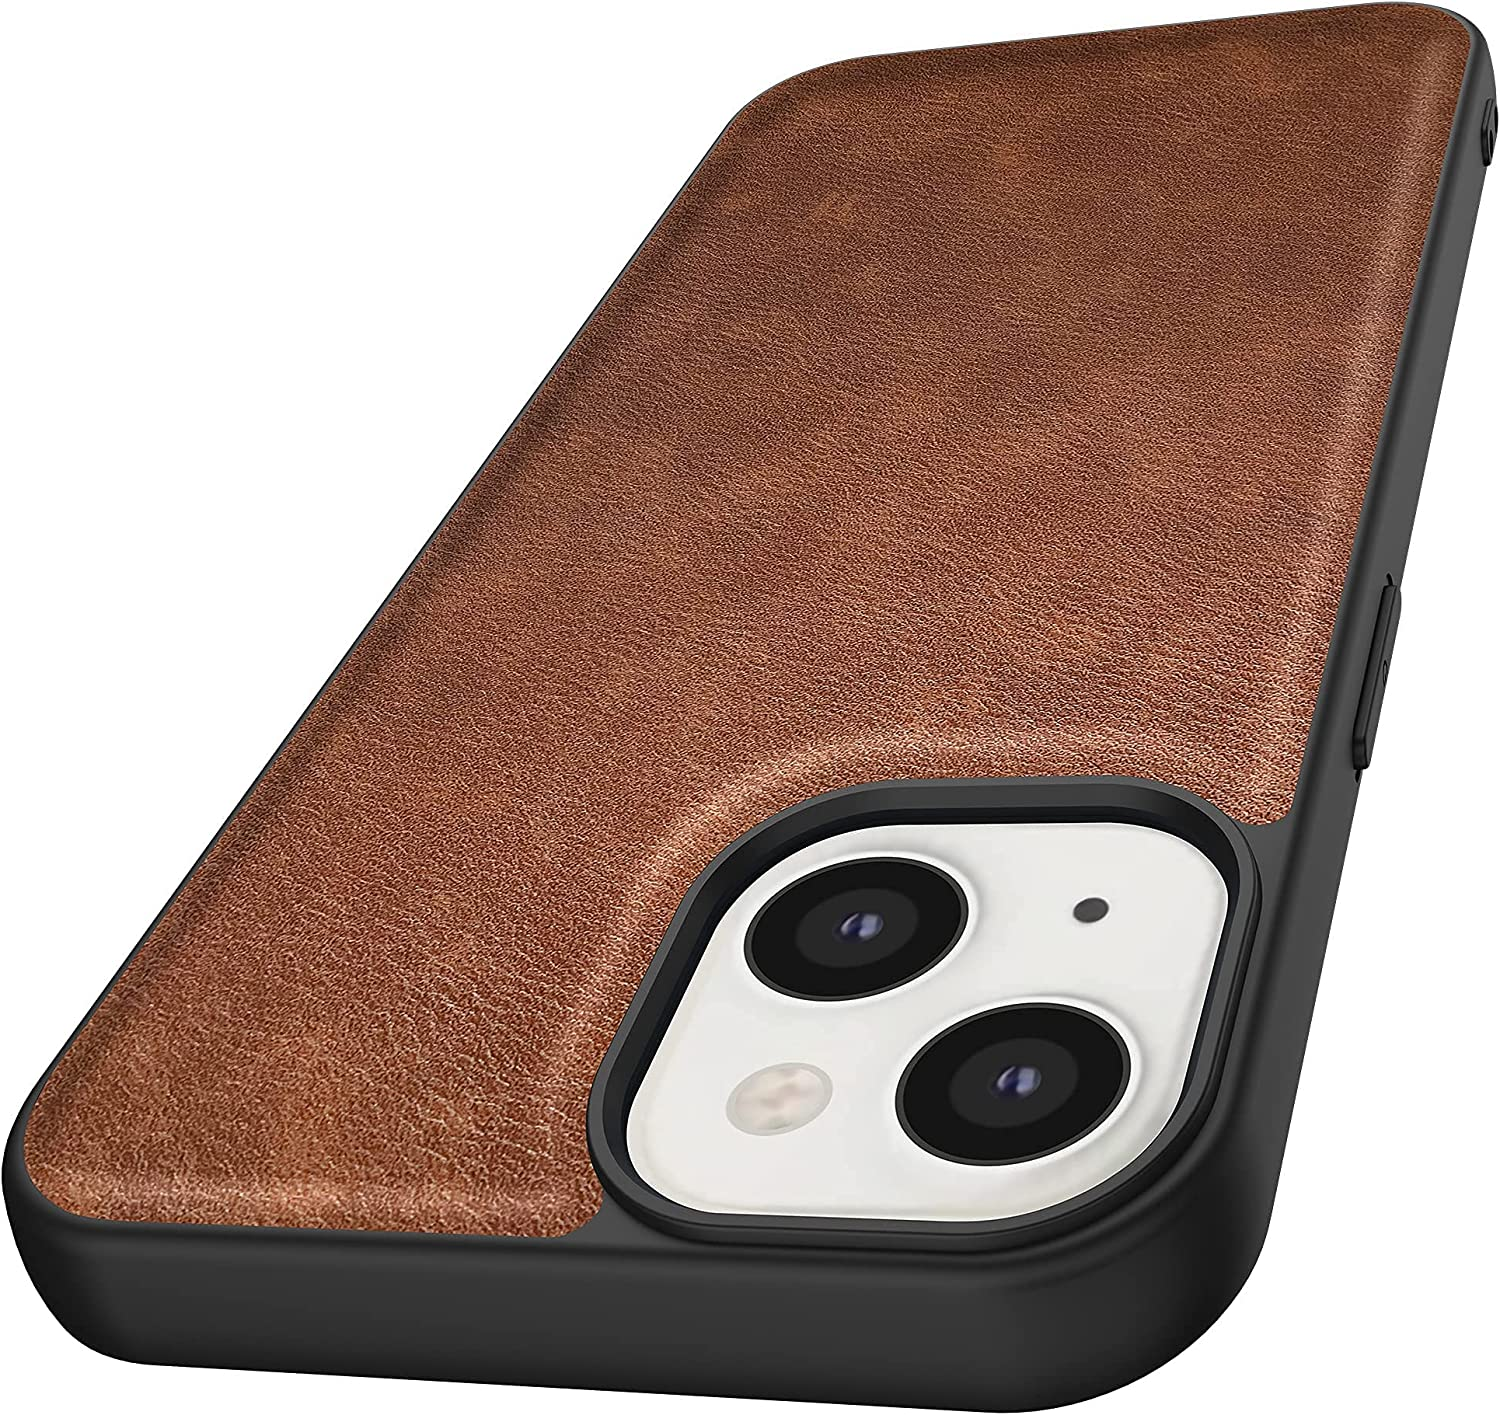 Kqimi Case for iPhone 13 Mini, Premium Leather Slim Stylish Soft Grip Shockproof Anti-Scratch Protection Cover Cases for iPhone 13 Mini(5.4